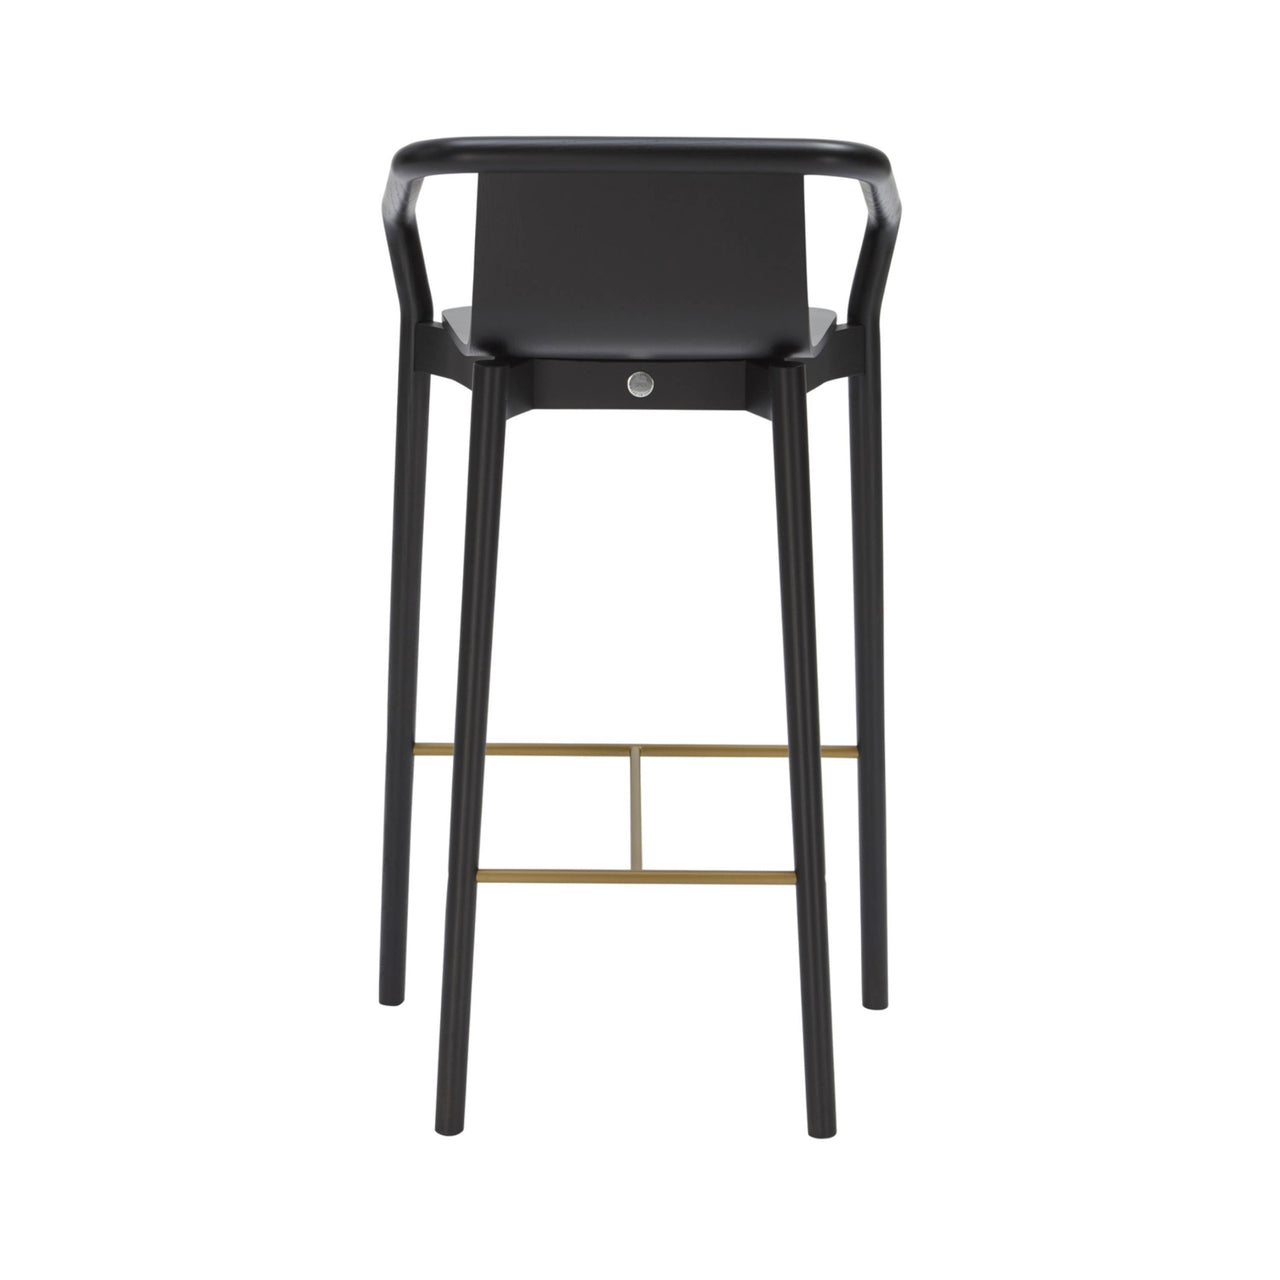 Thomas Bar + Counter Stool: Bar Stool + Carbon Stained Ash + Gold Chrome